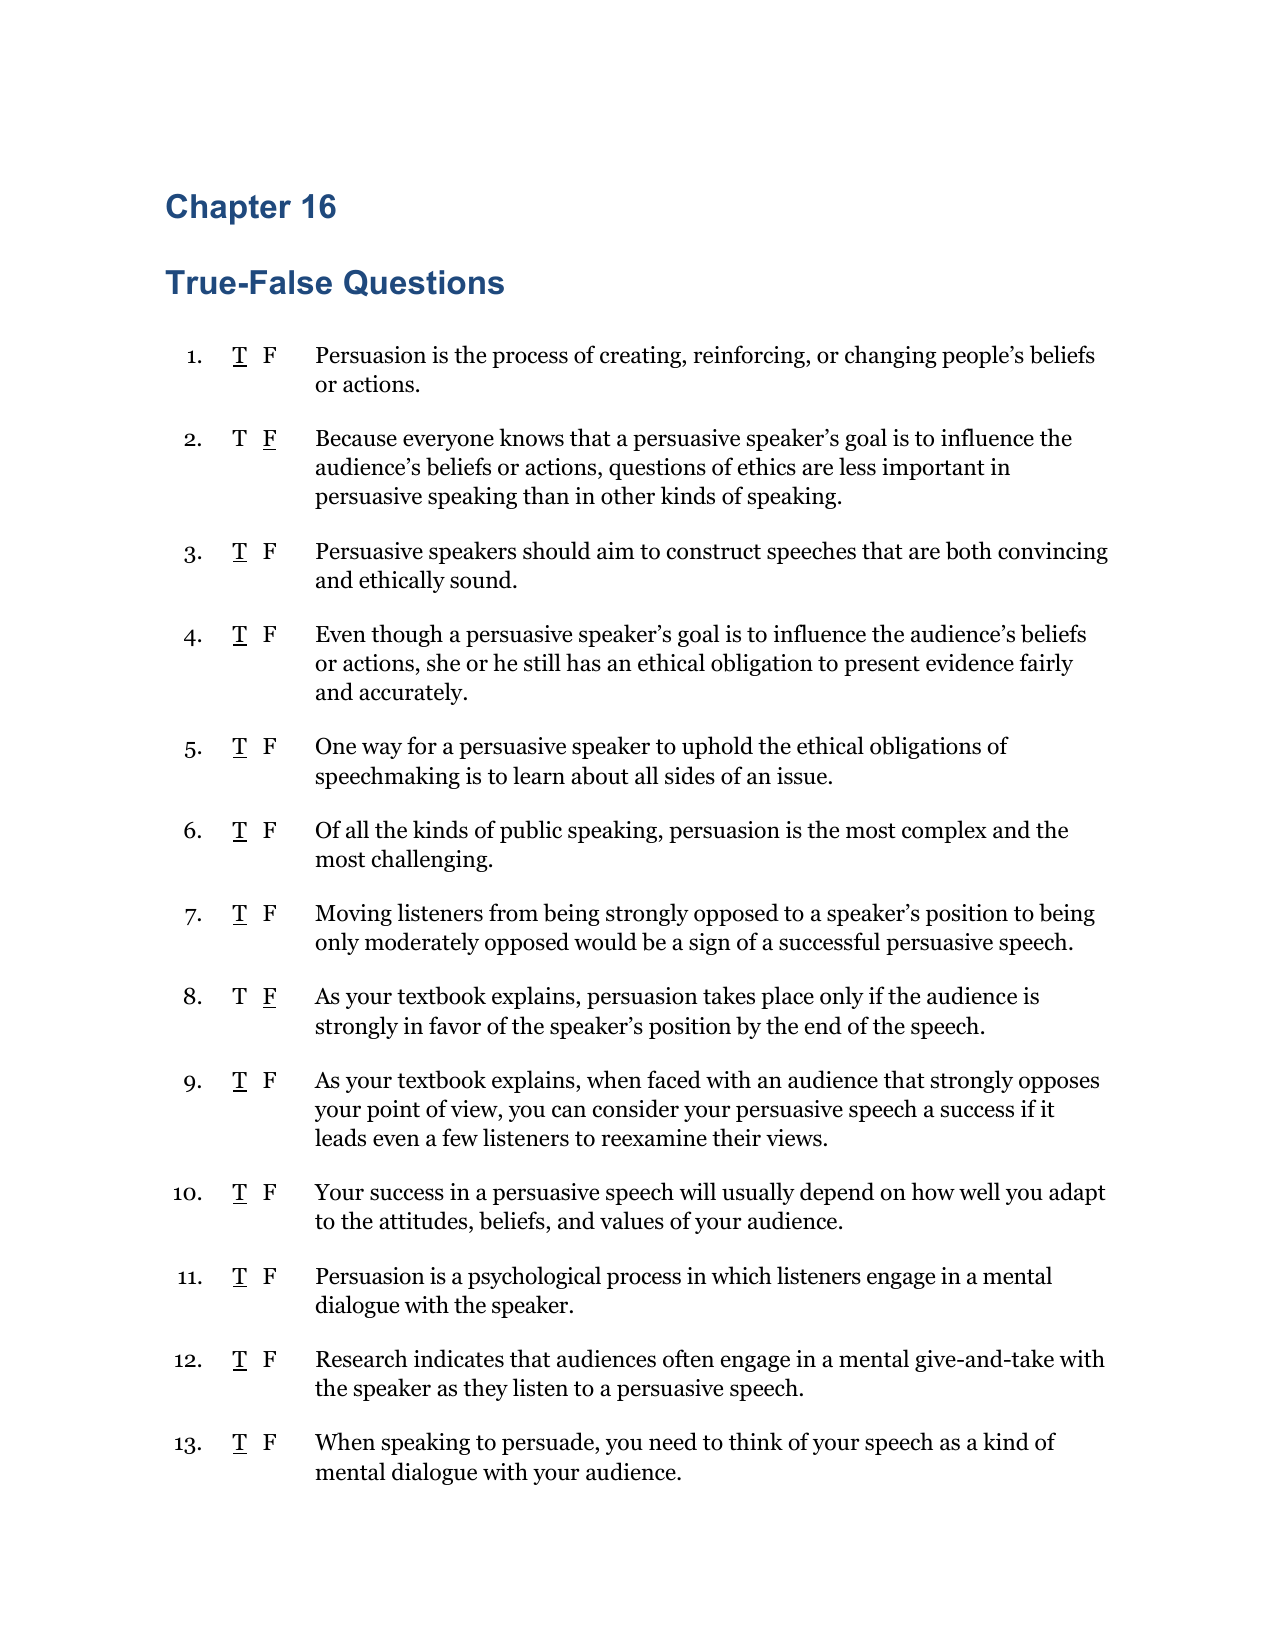 Chapter 8 True-False Questions